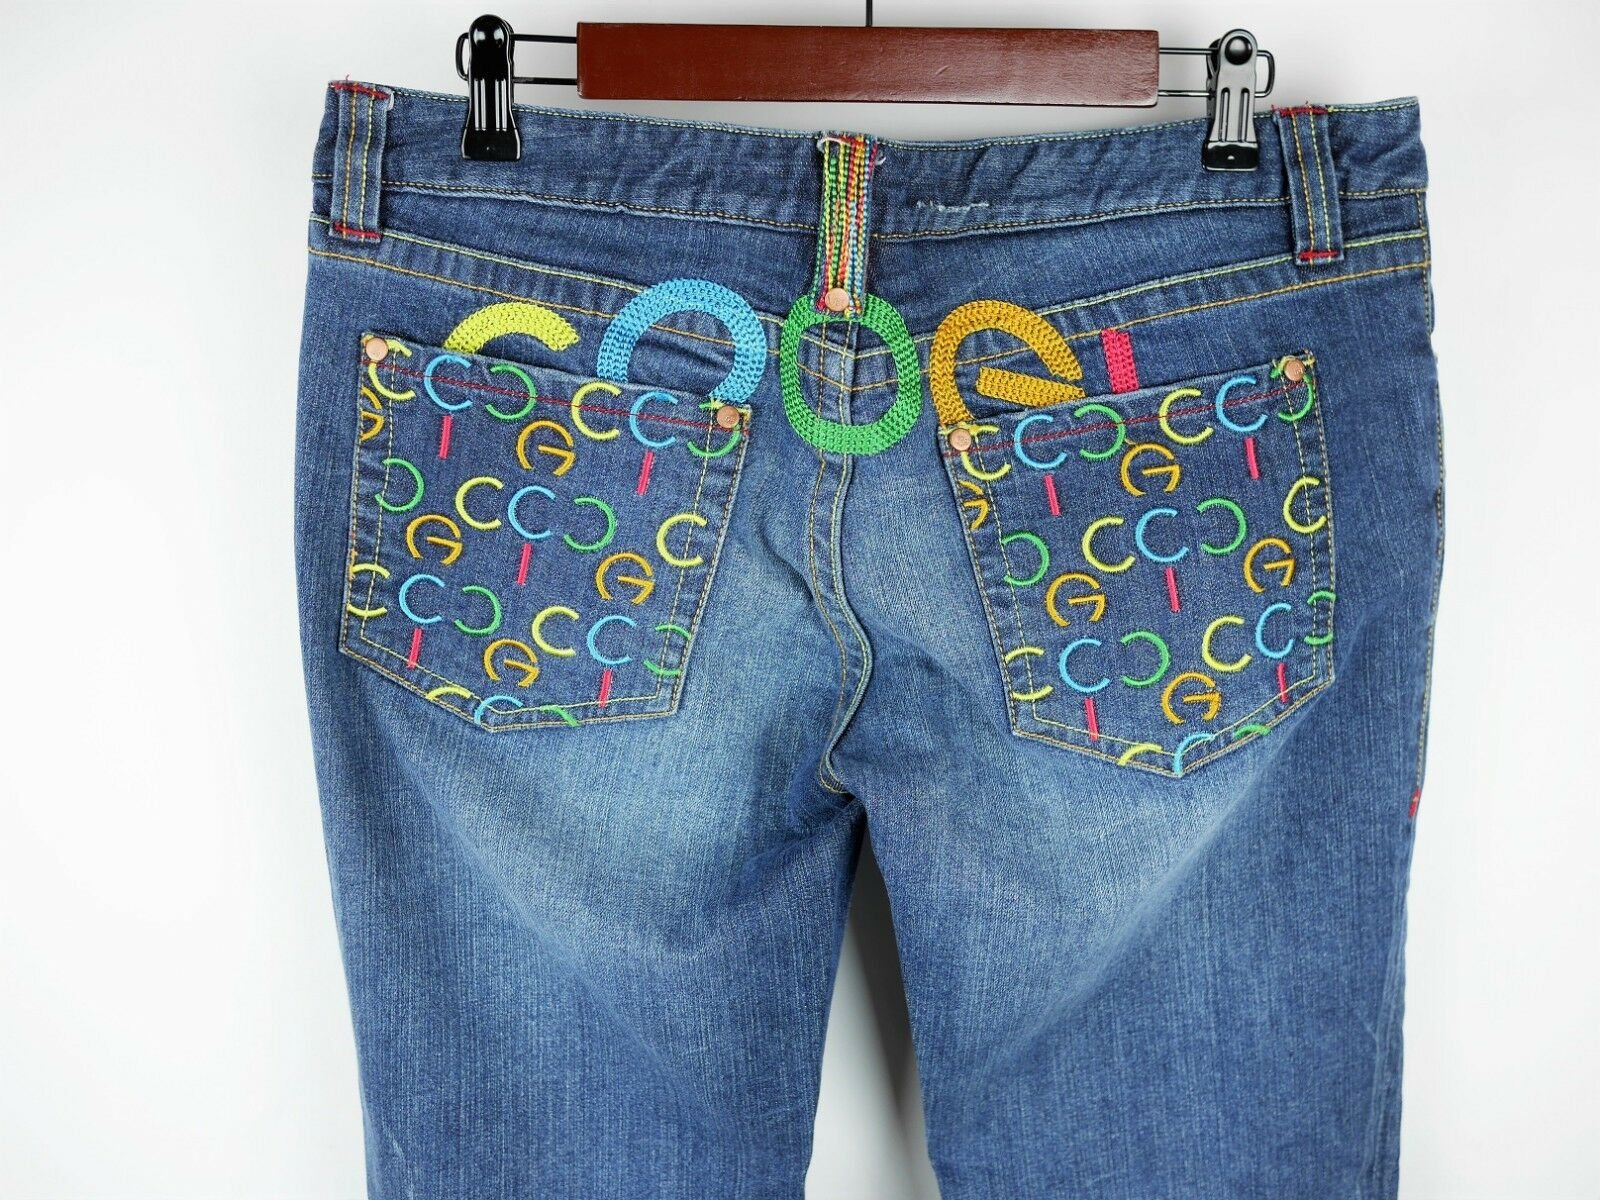 COOGI JEANS Women's 11   12 - MEDIUM WASH blueE JEANS BOOT CUT DENIM EMBROIDERED